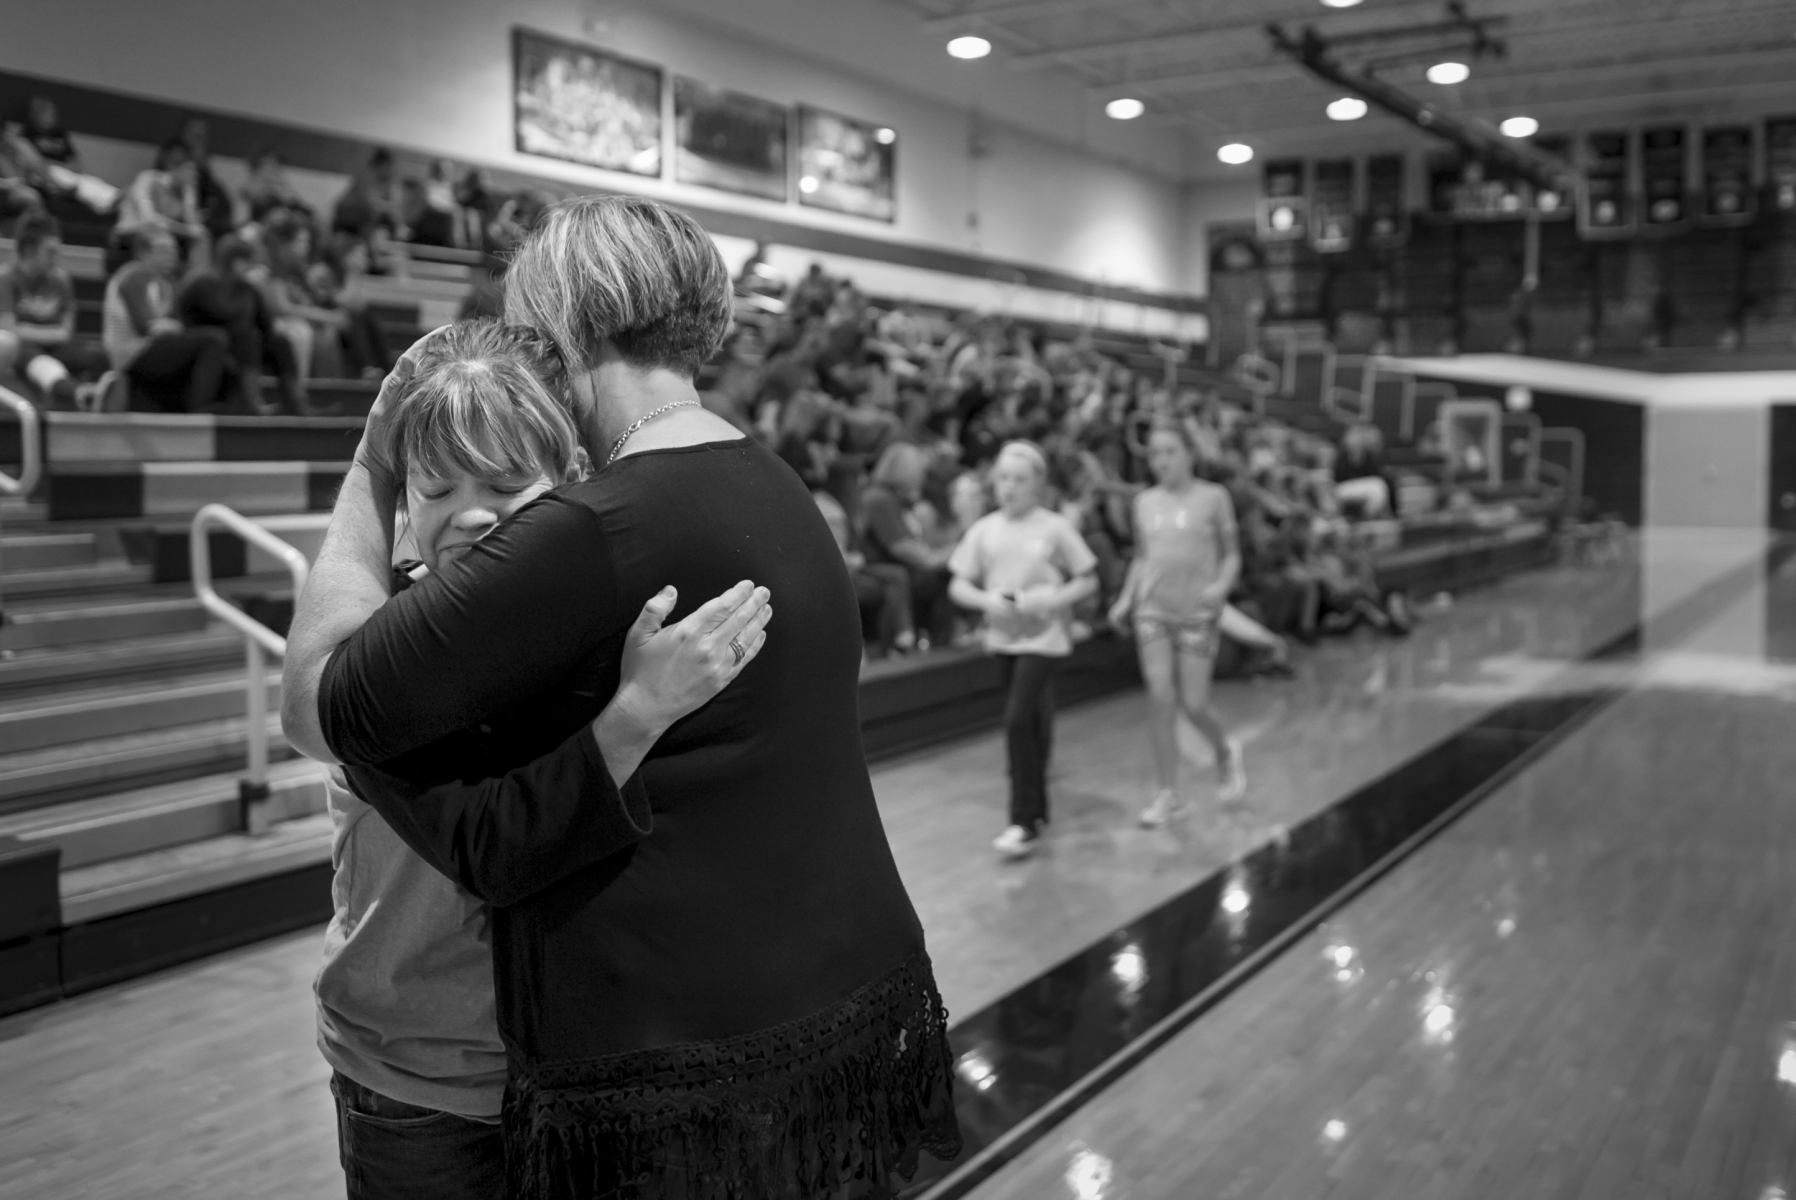 Melanie hugs her friend, Ronda Elam, after the screening of the movie A Girl Like Her, that shares the story of a bullying victim, hosted by Reagan's Voice Foundation at Clay County High School. Reagan's Voice Foundation is a nonprofit organization that was established by Melanie and a few of her close friends after Reagan's death. The organization helps spread Reagan's story and urges other victims of bullying to find a voice. As emotional as is it for Melanie to spread Reagan's story through the organization, such meetings are cathartic as well, especially when hosted at schools.